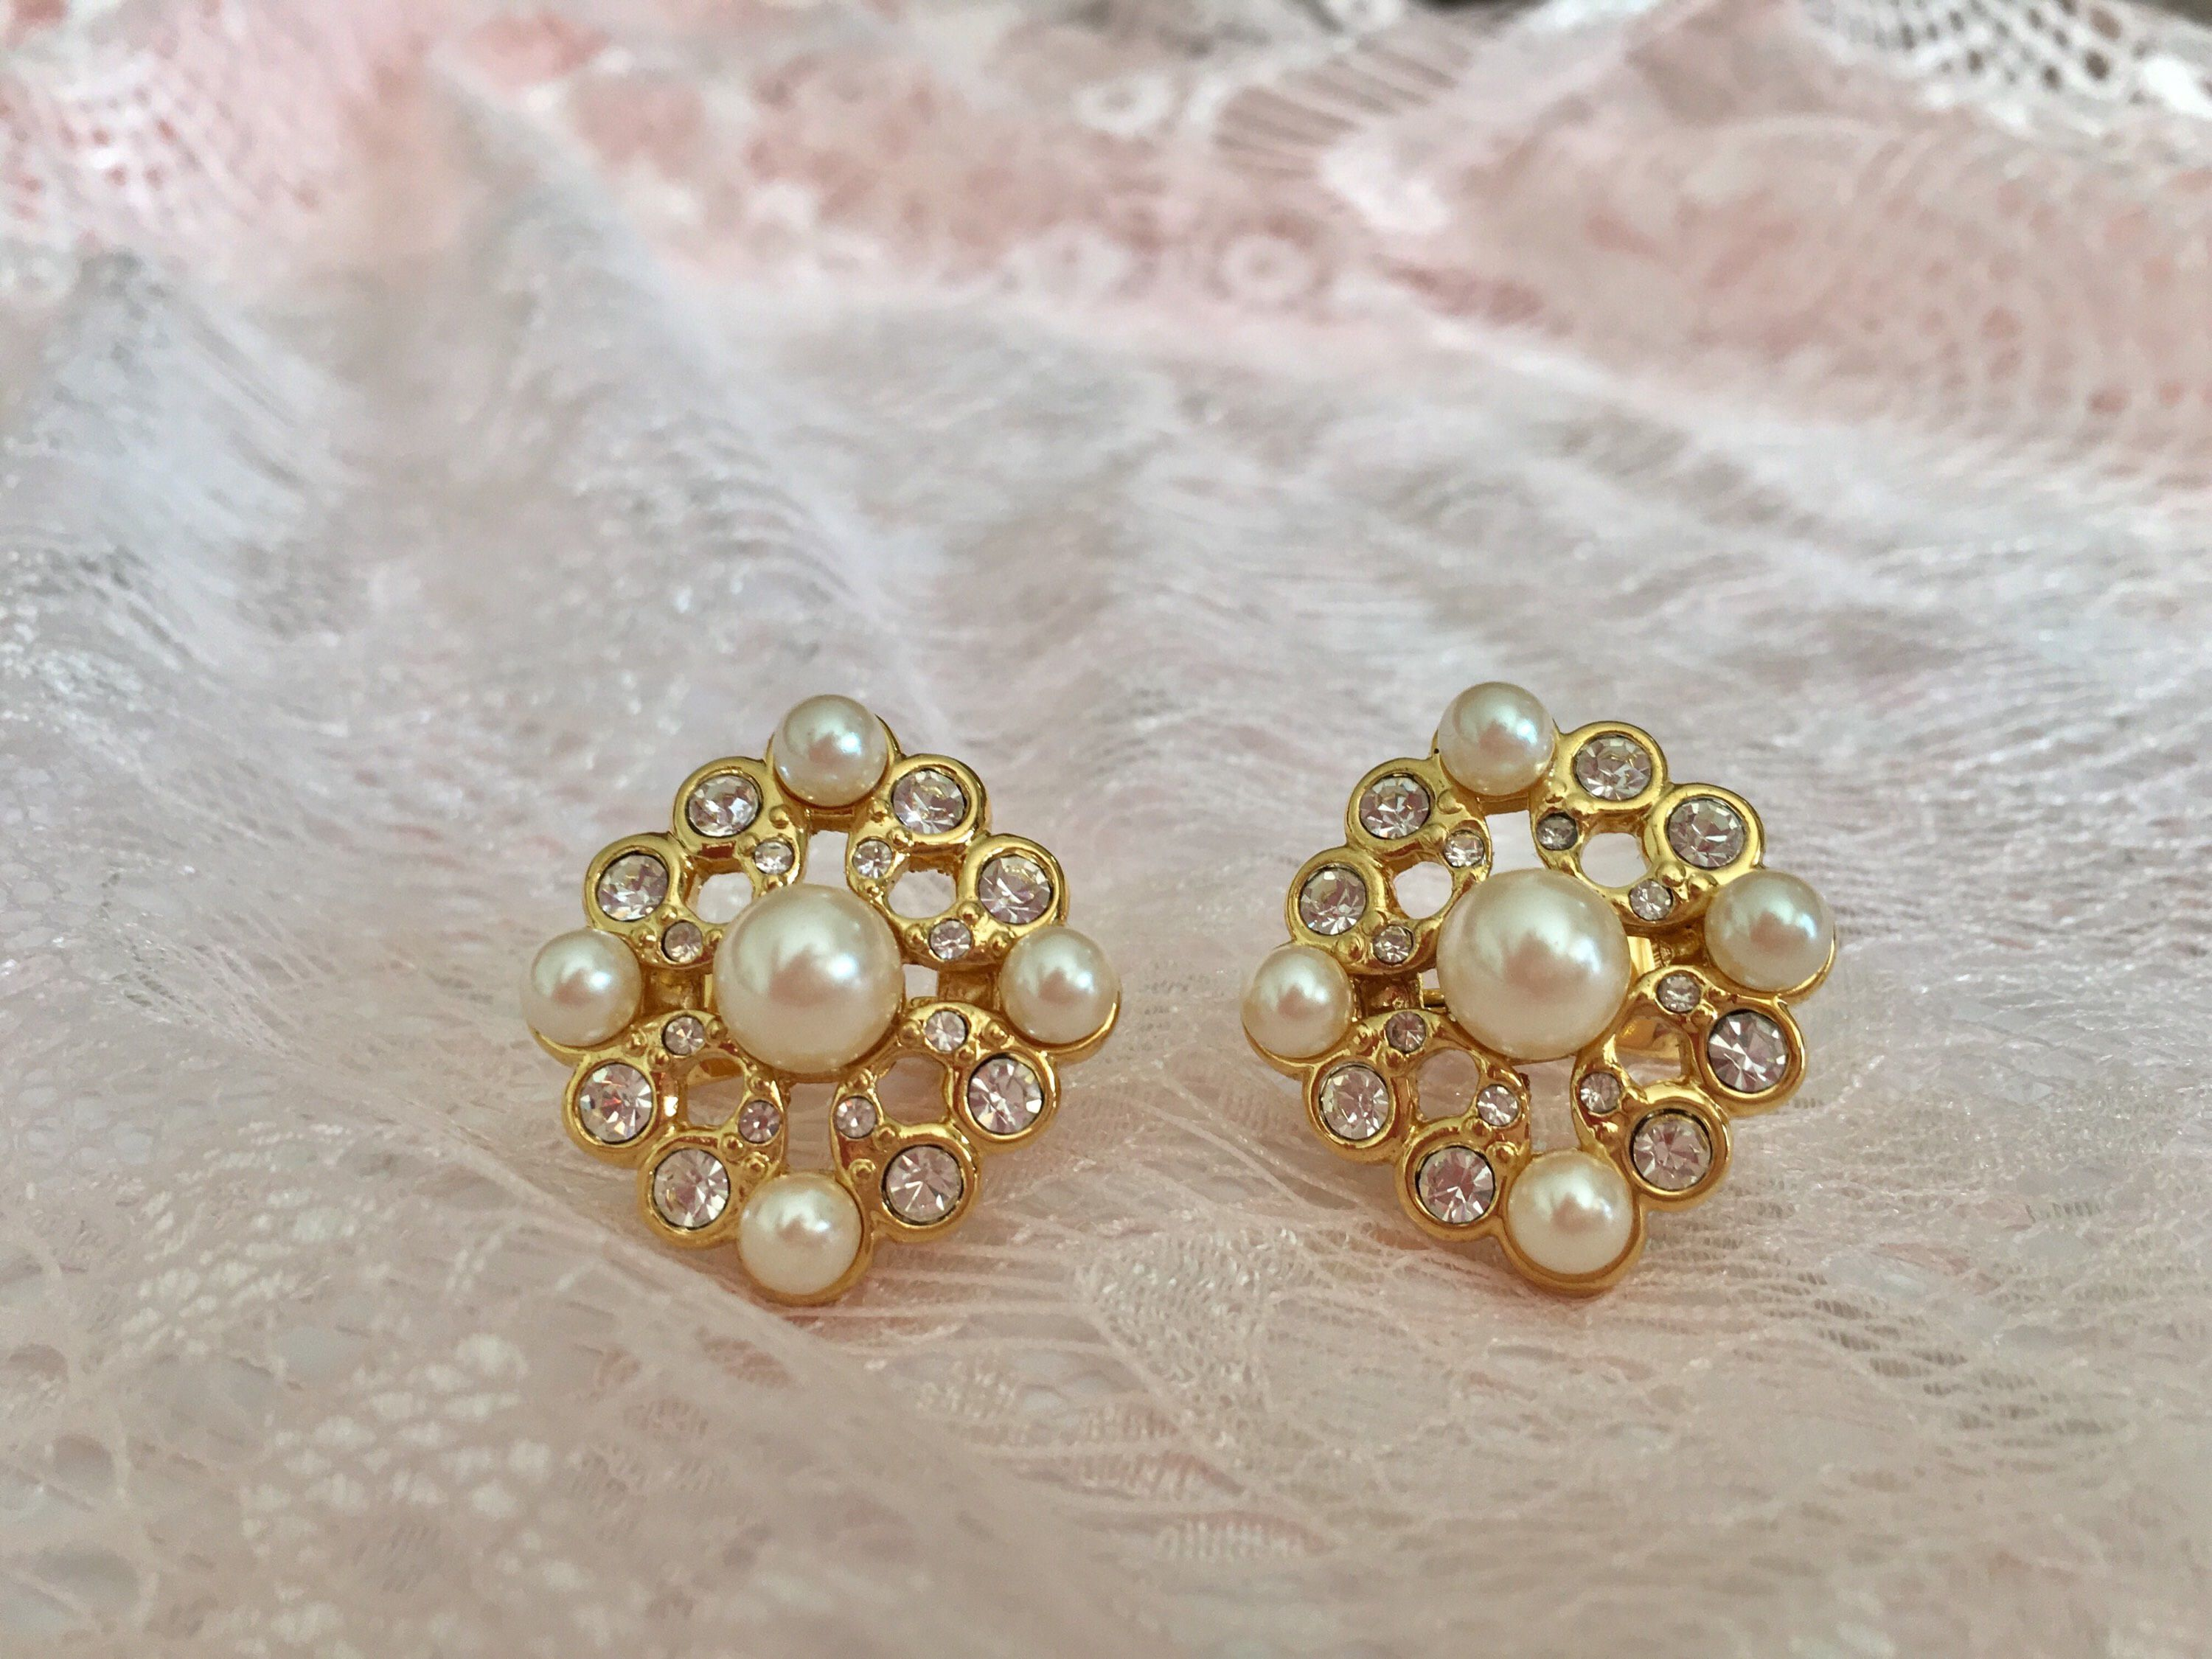 Vintage Pearl Gold Clip On Earrings Https Etsy